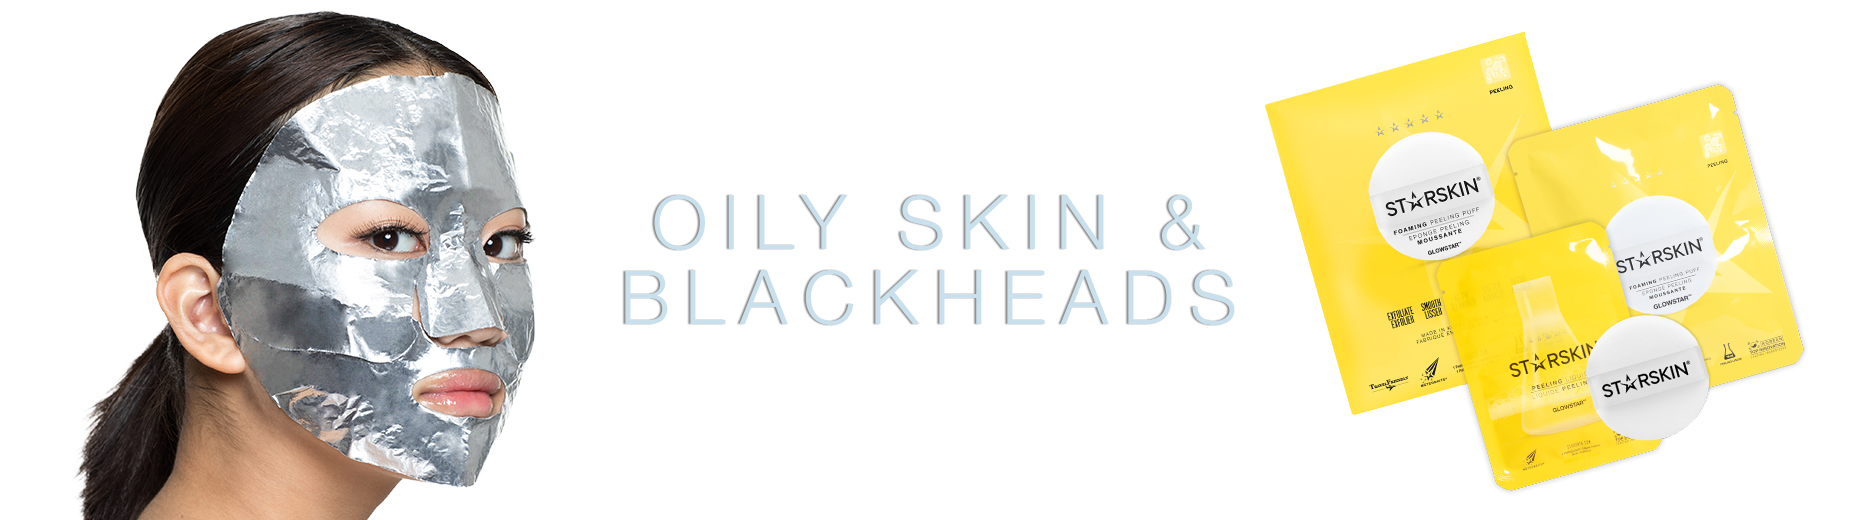 oily skin & blackheads banner platinum peel mask and glowstar peeling puff